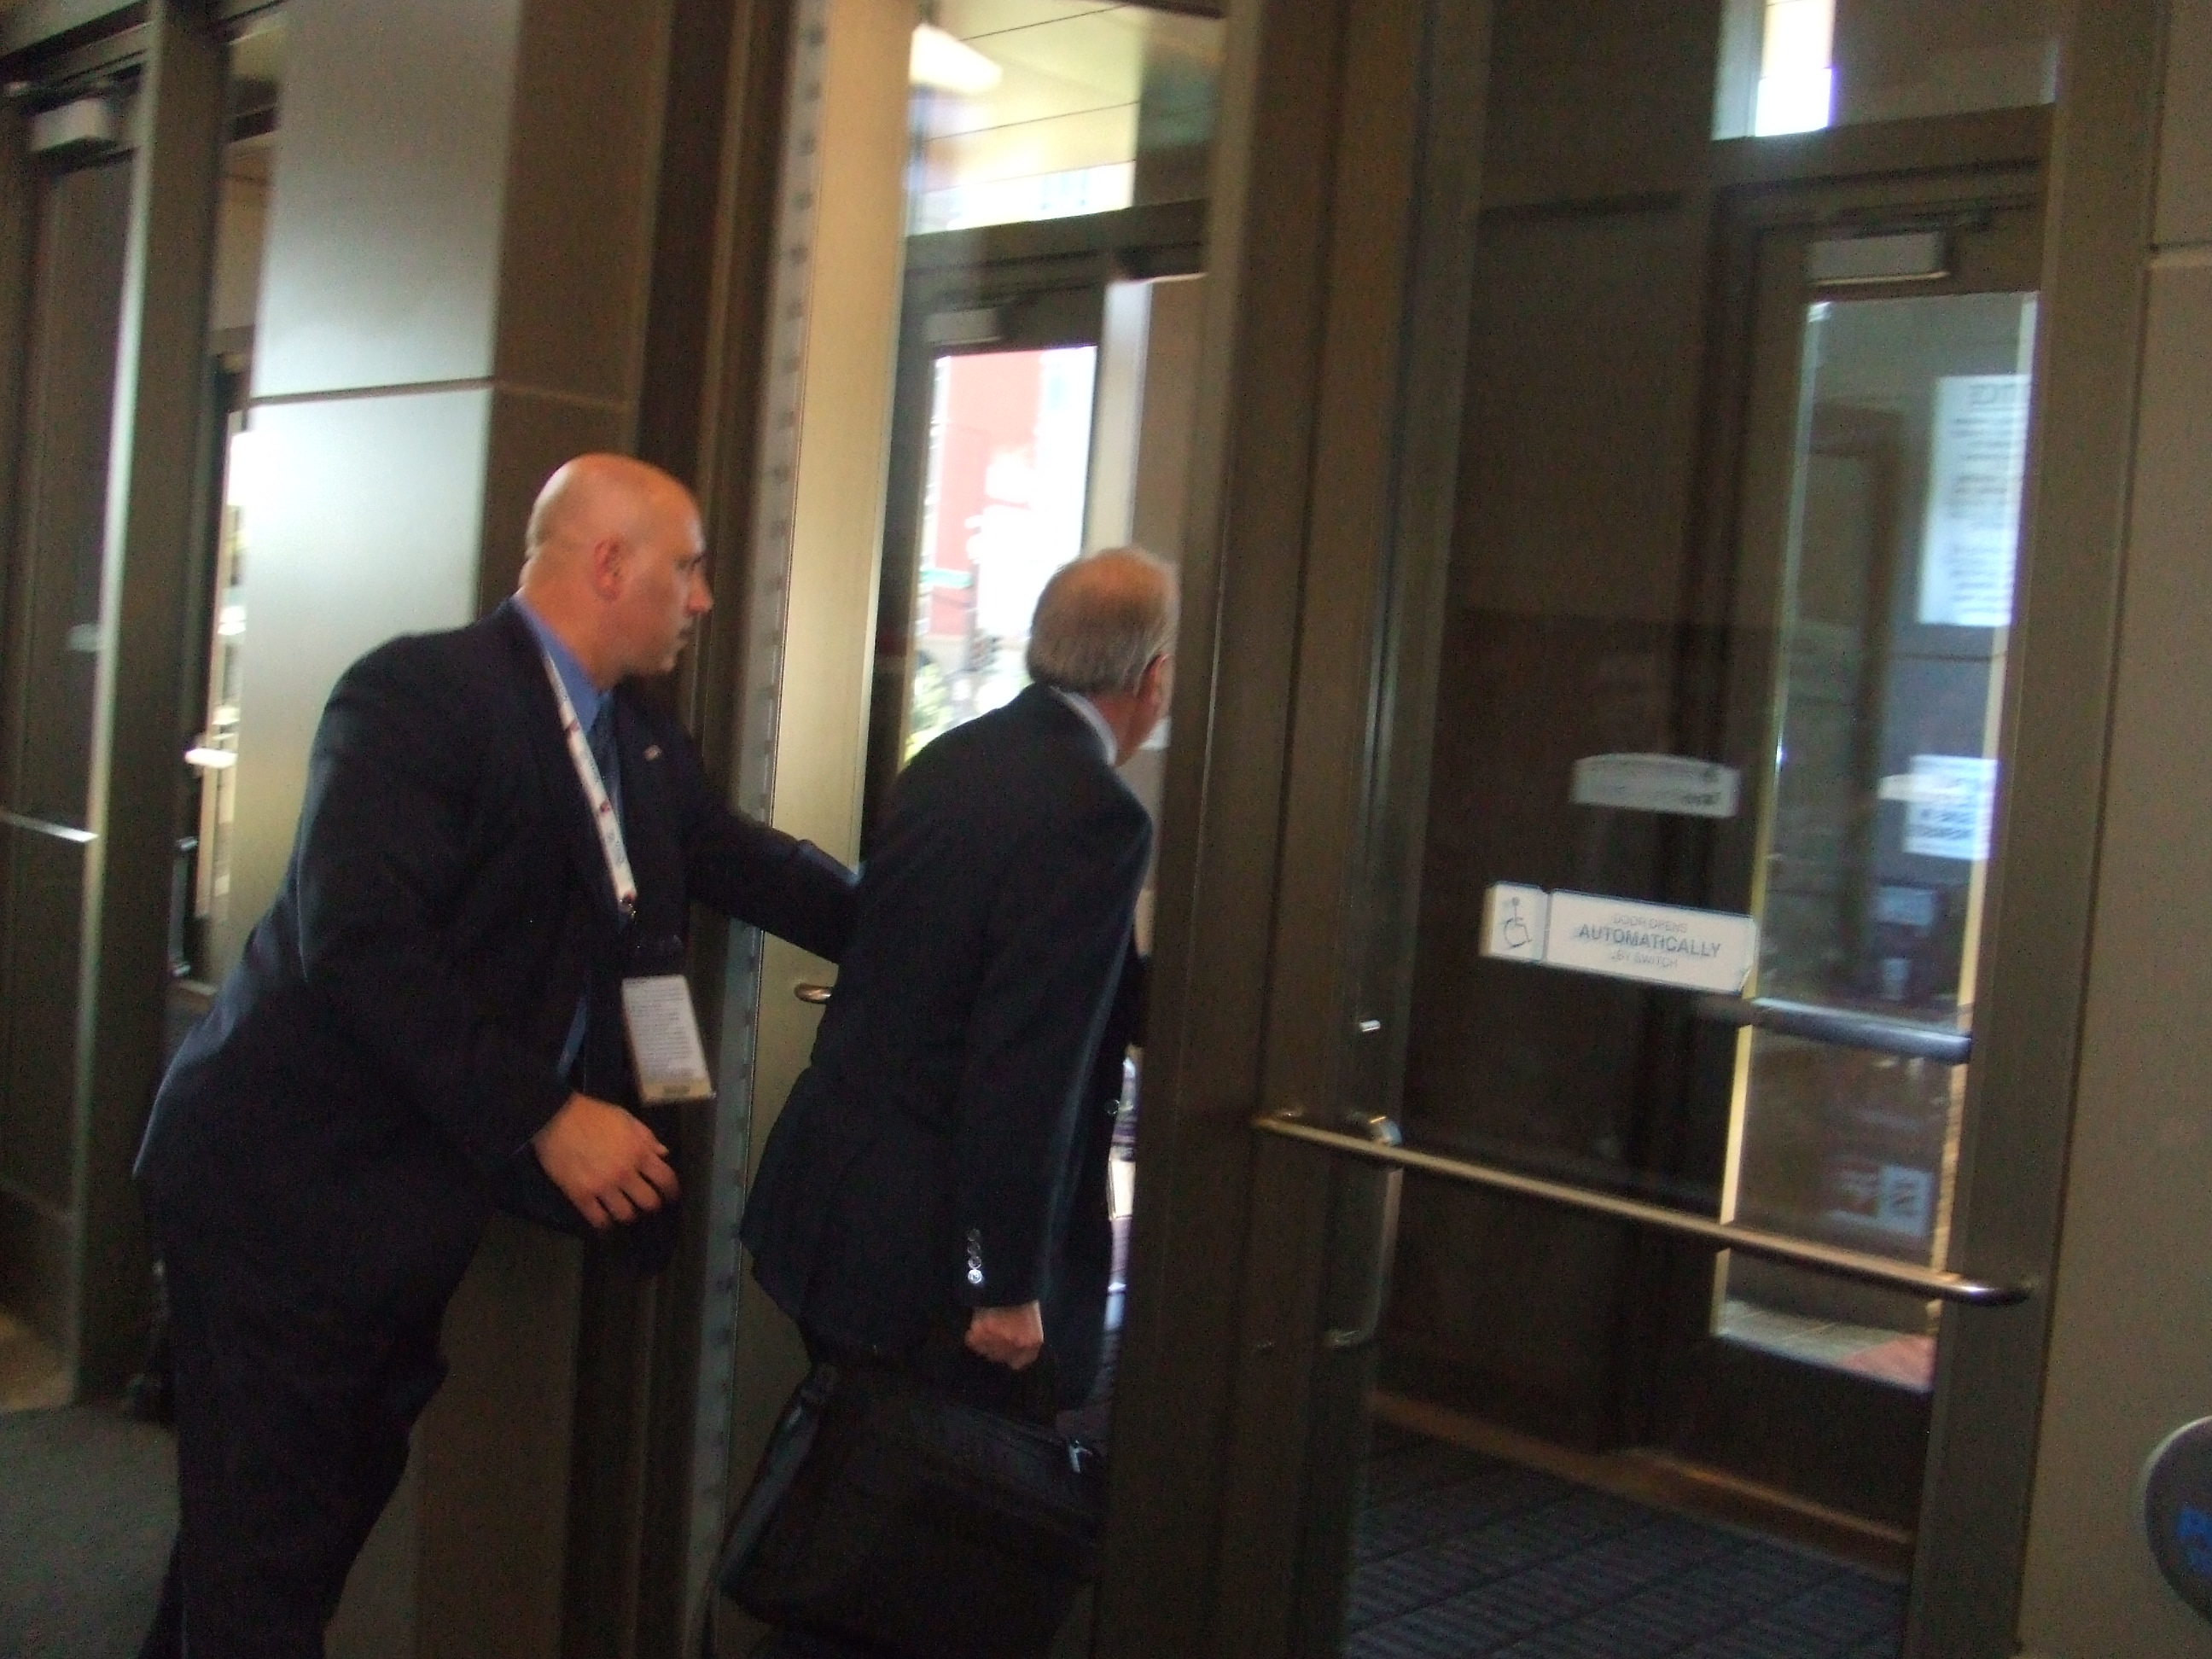 Karl Rove! First one out the door. He seemed friendly!